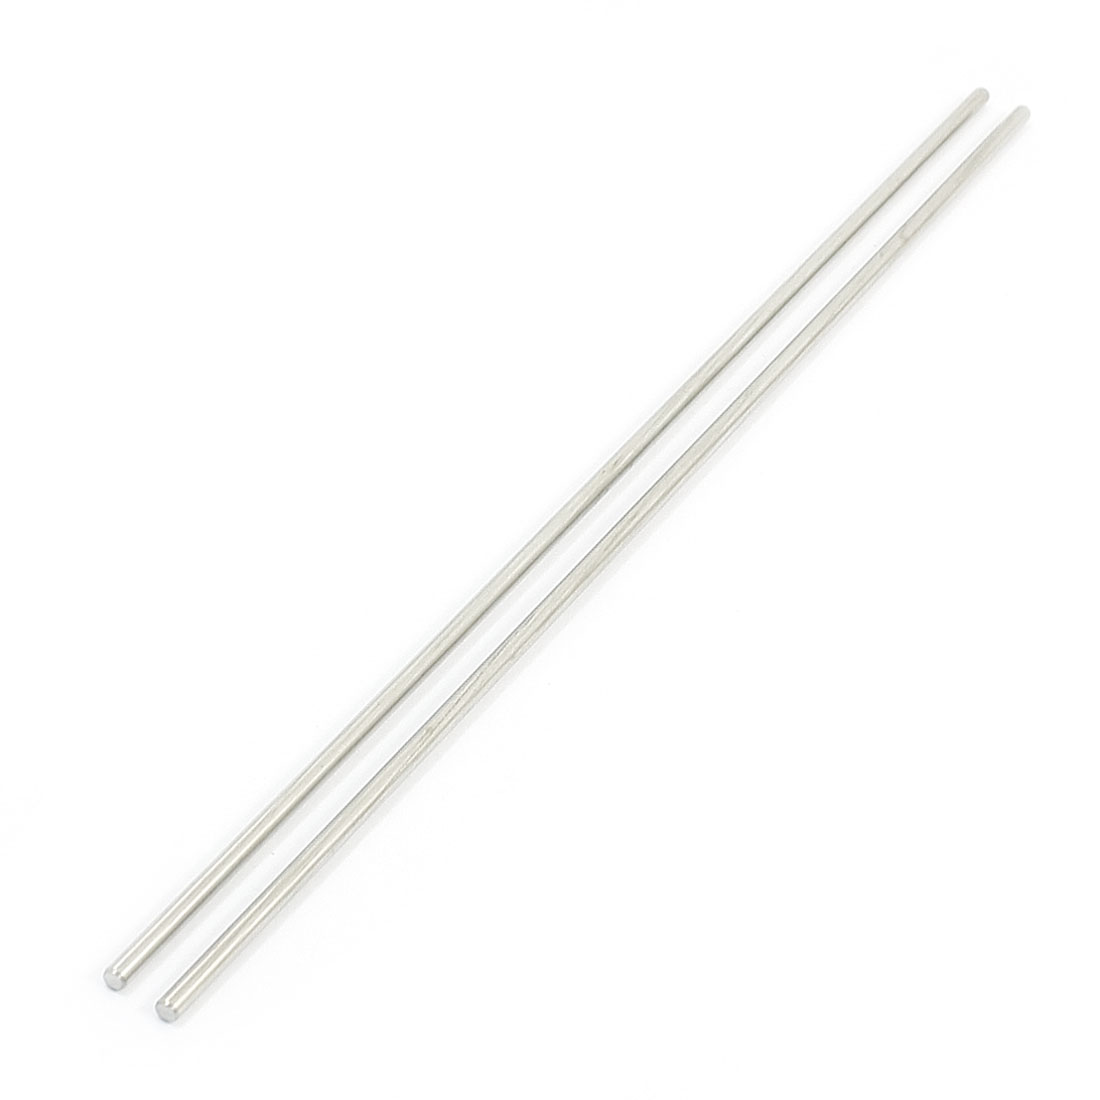 "2Pcs 2.5mm Diameter Stainless Steel Motion Axle Circular Round Rod Bar 7.5"" Long"